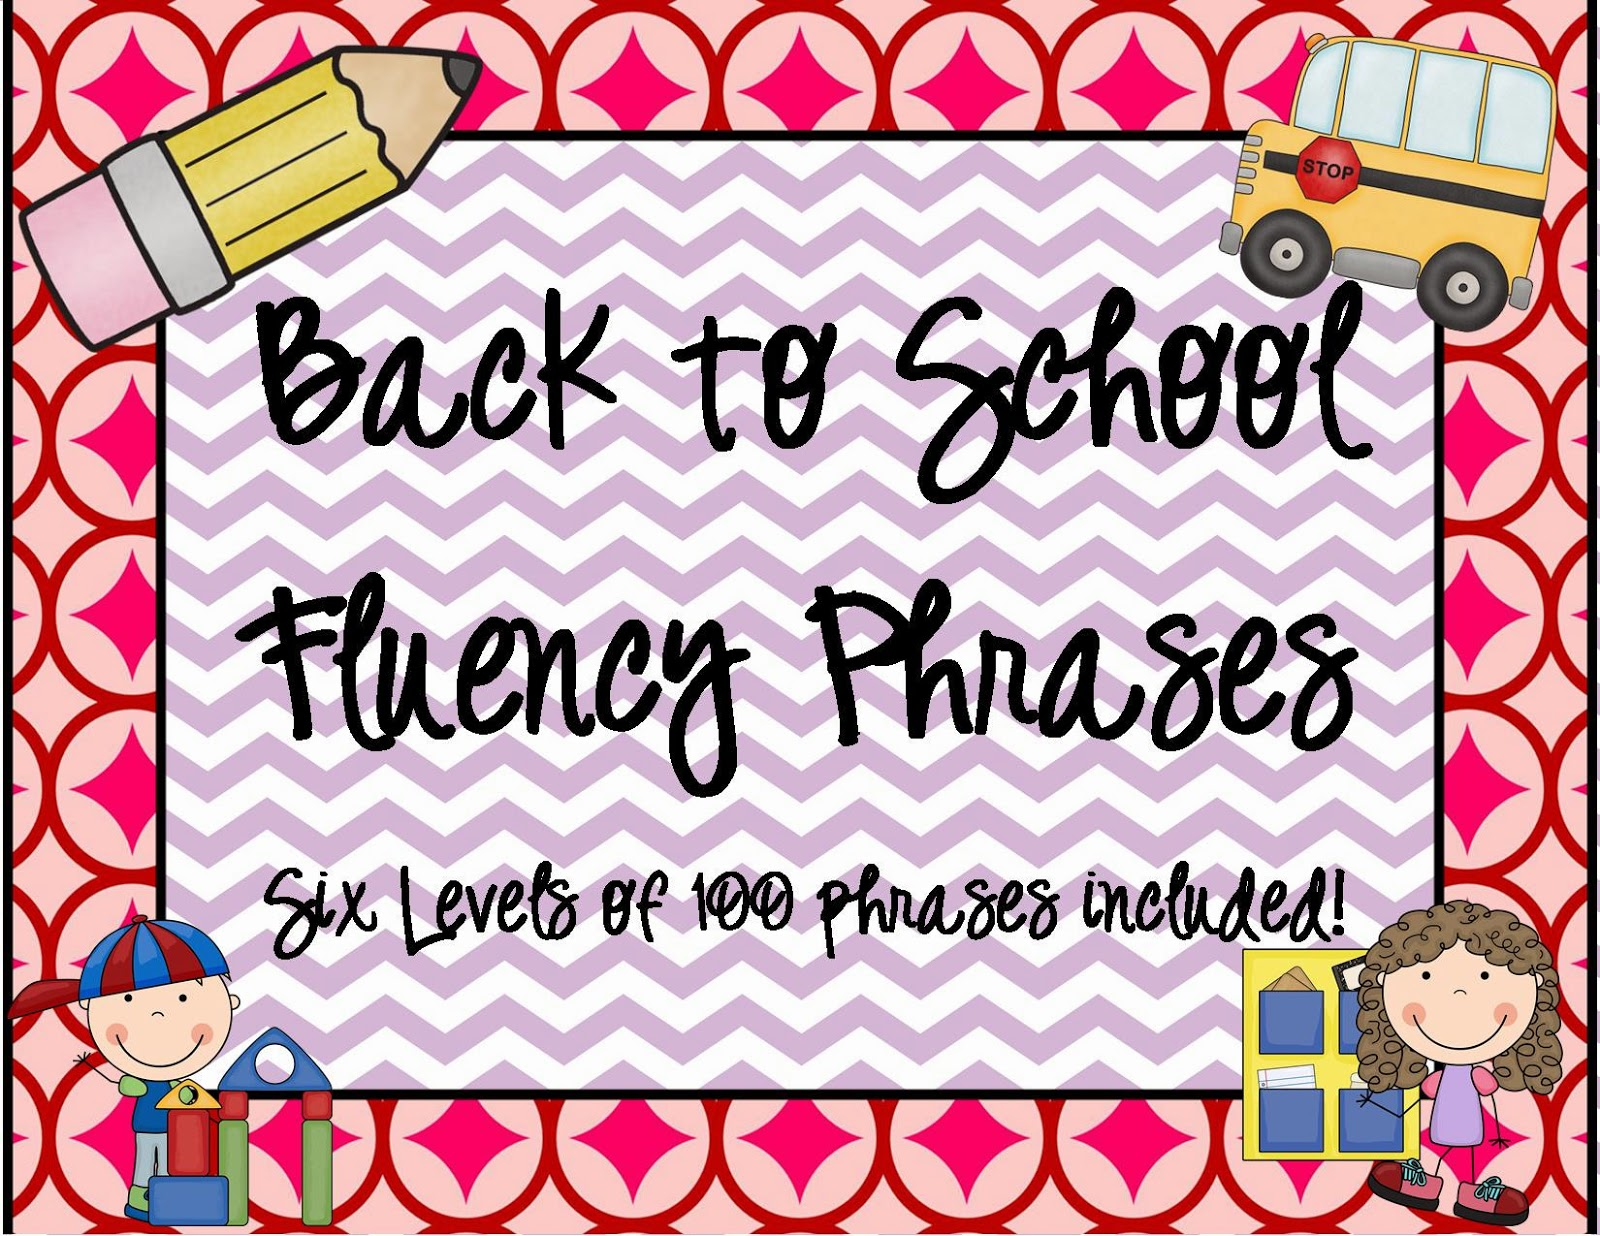 http://www.teacherspayteachers.com/Product/Back-to-School-Fluency-Phrases-All-6-Levels-802700